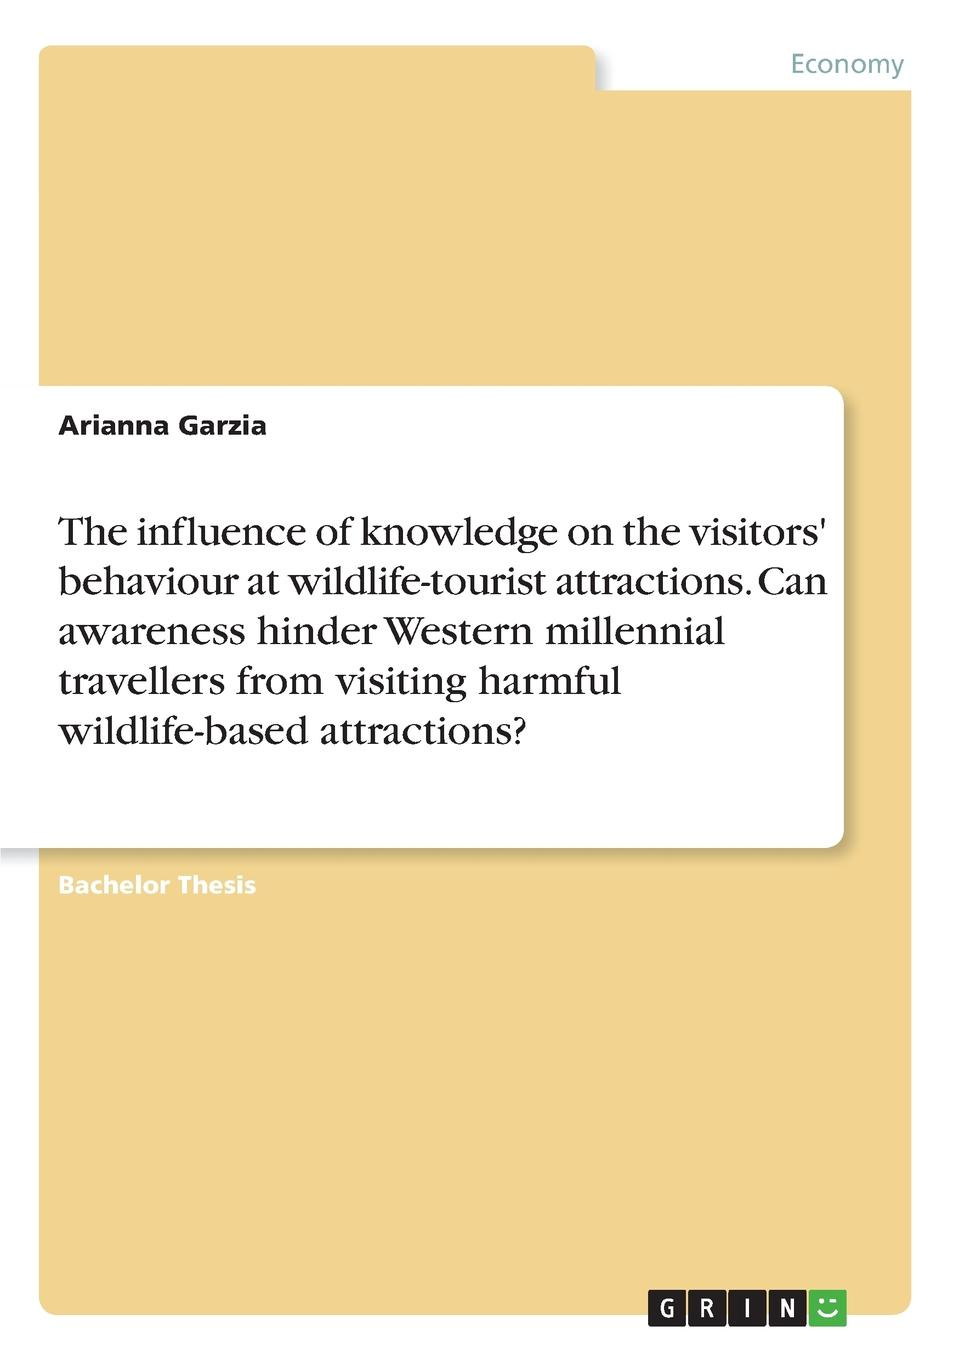 Arianna Garzia The influence of knowledge on the visitors. behaviour at wildlife-tourist attractions. Can awareness hinder Western millennial travellers from visiting harmful wildlife-based attractions.